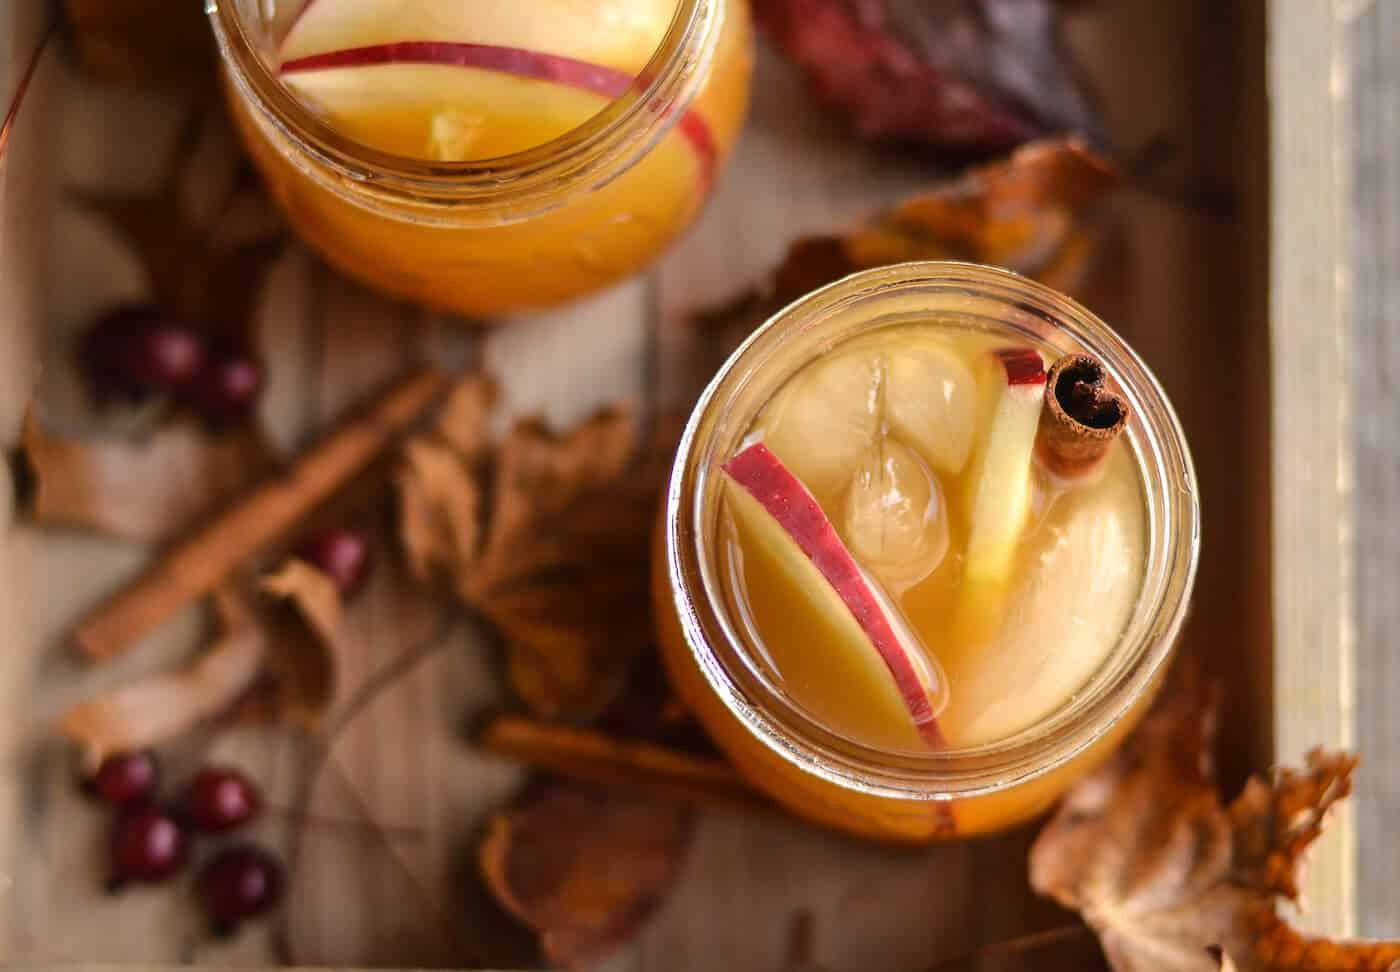 ginger beer and vodka with apple cider